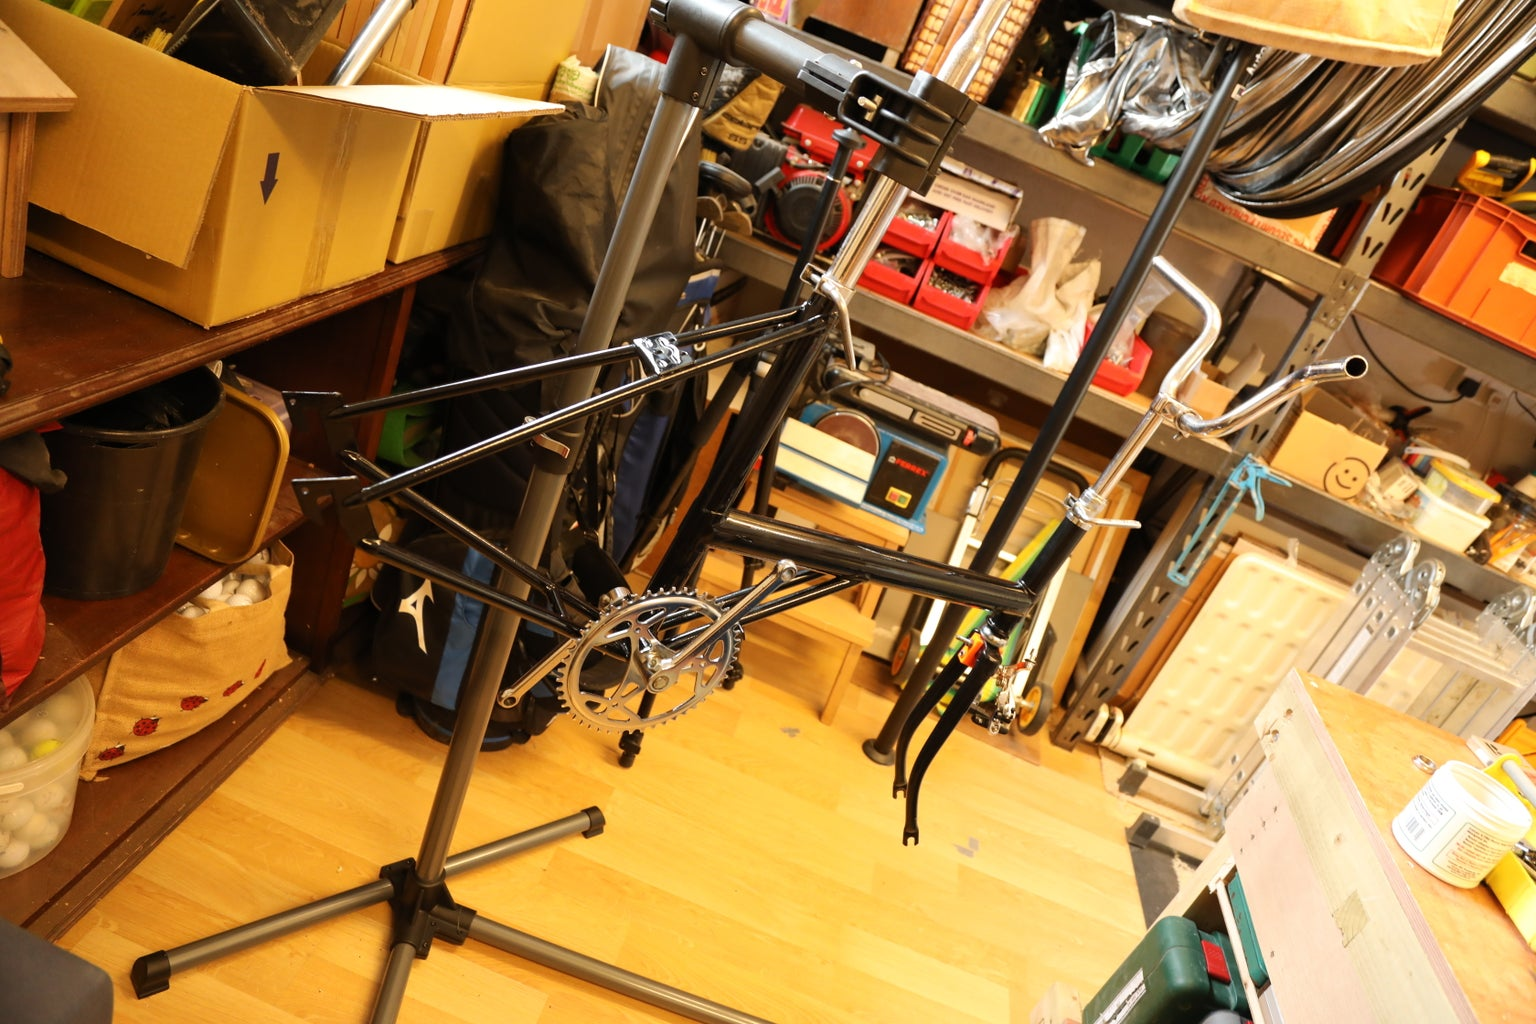 Reassembly of the Painted Frame